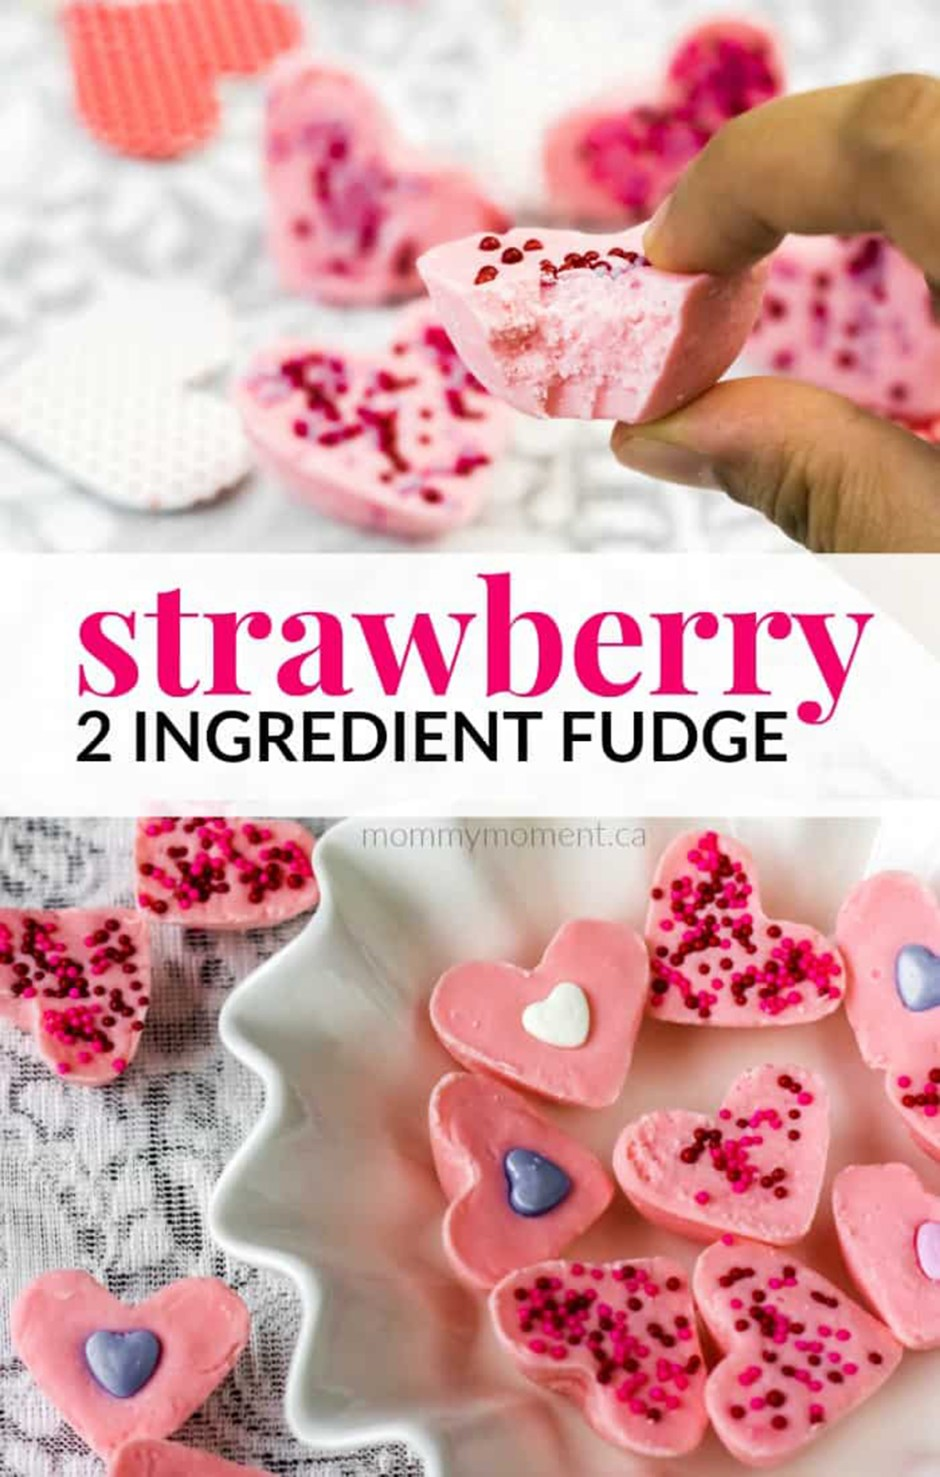 Valentines Day 06 Strawberry 2 Ingredient Fudge